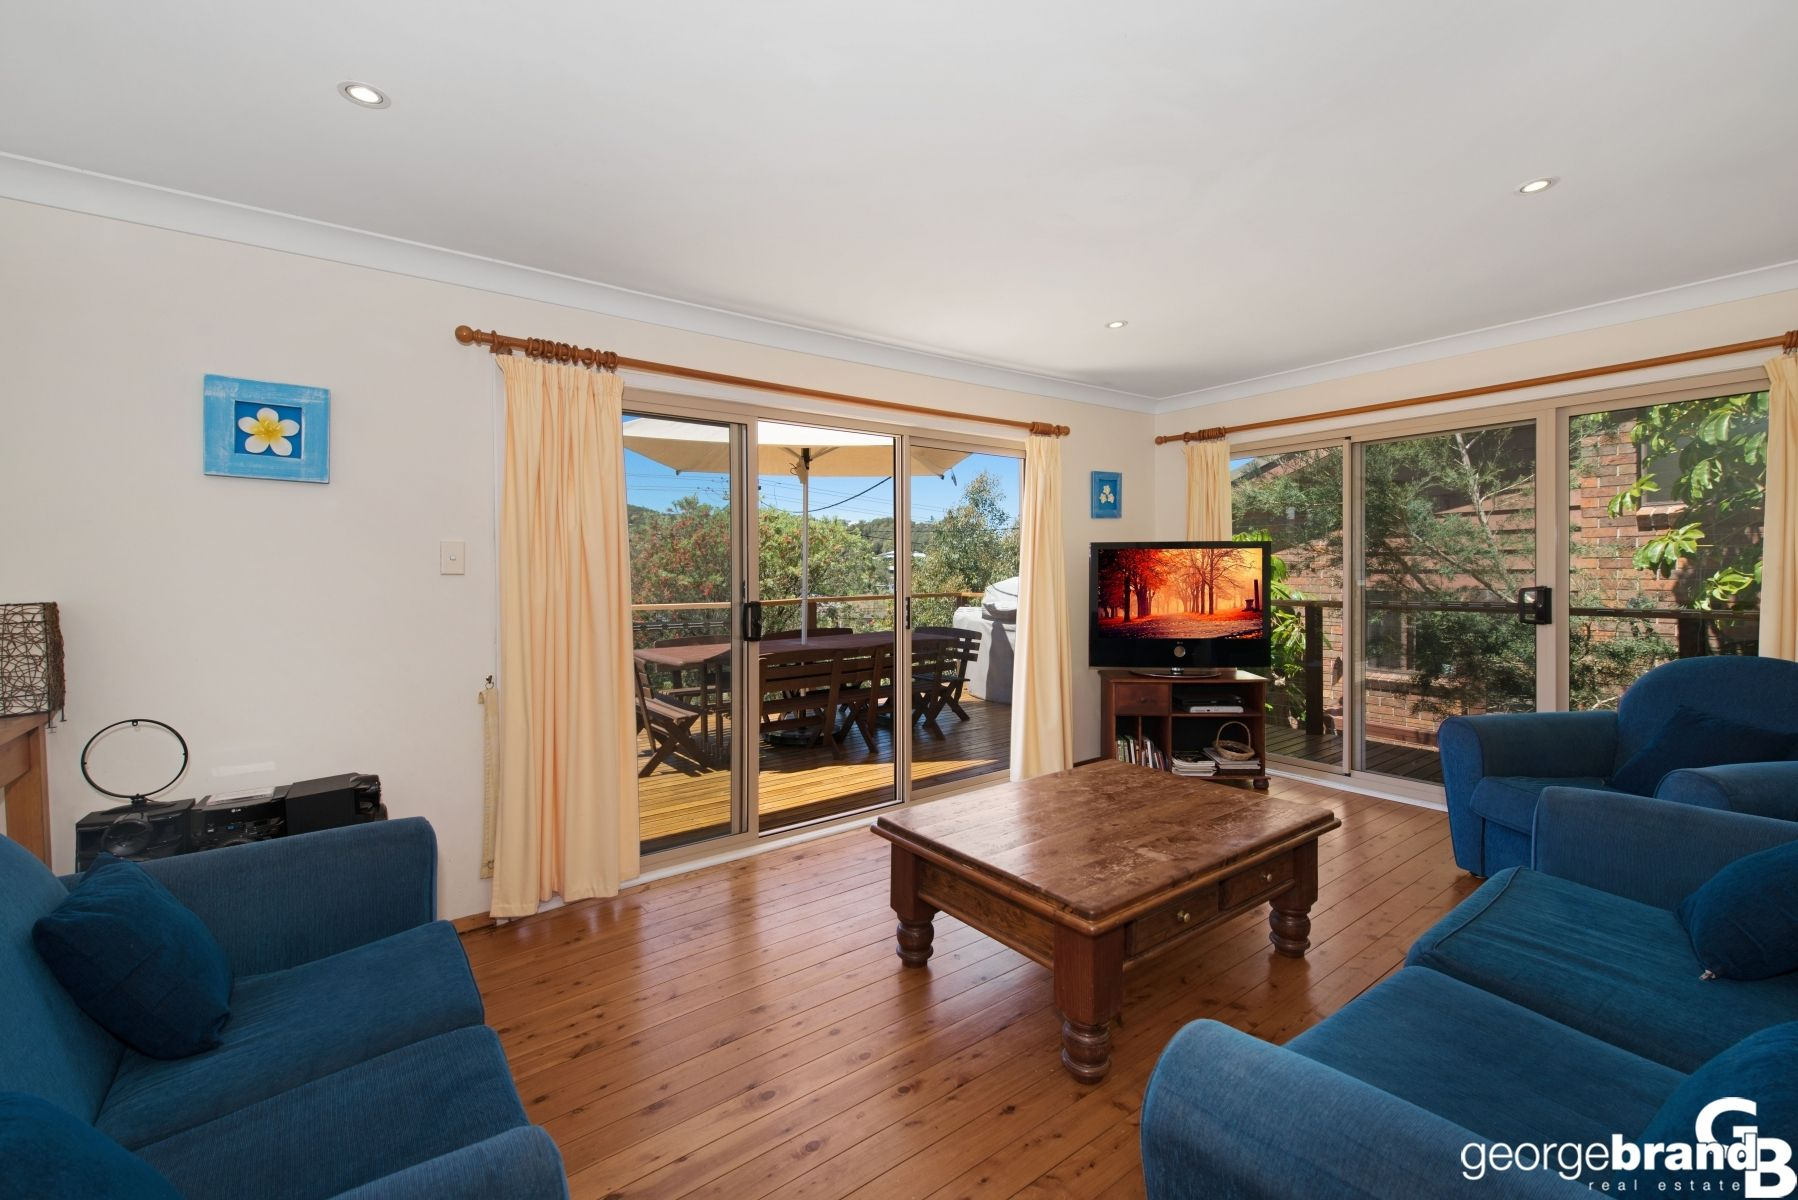 Copacabana Real Estate: Ideal Family Home with Separate Accommodation